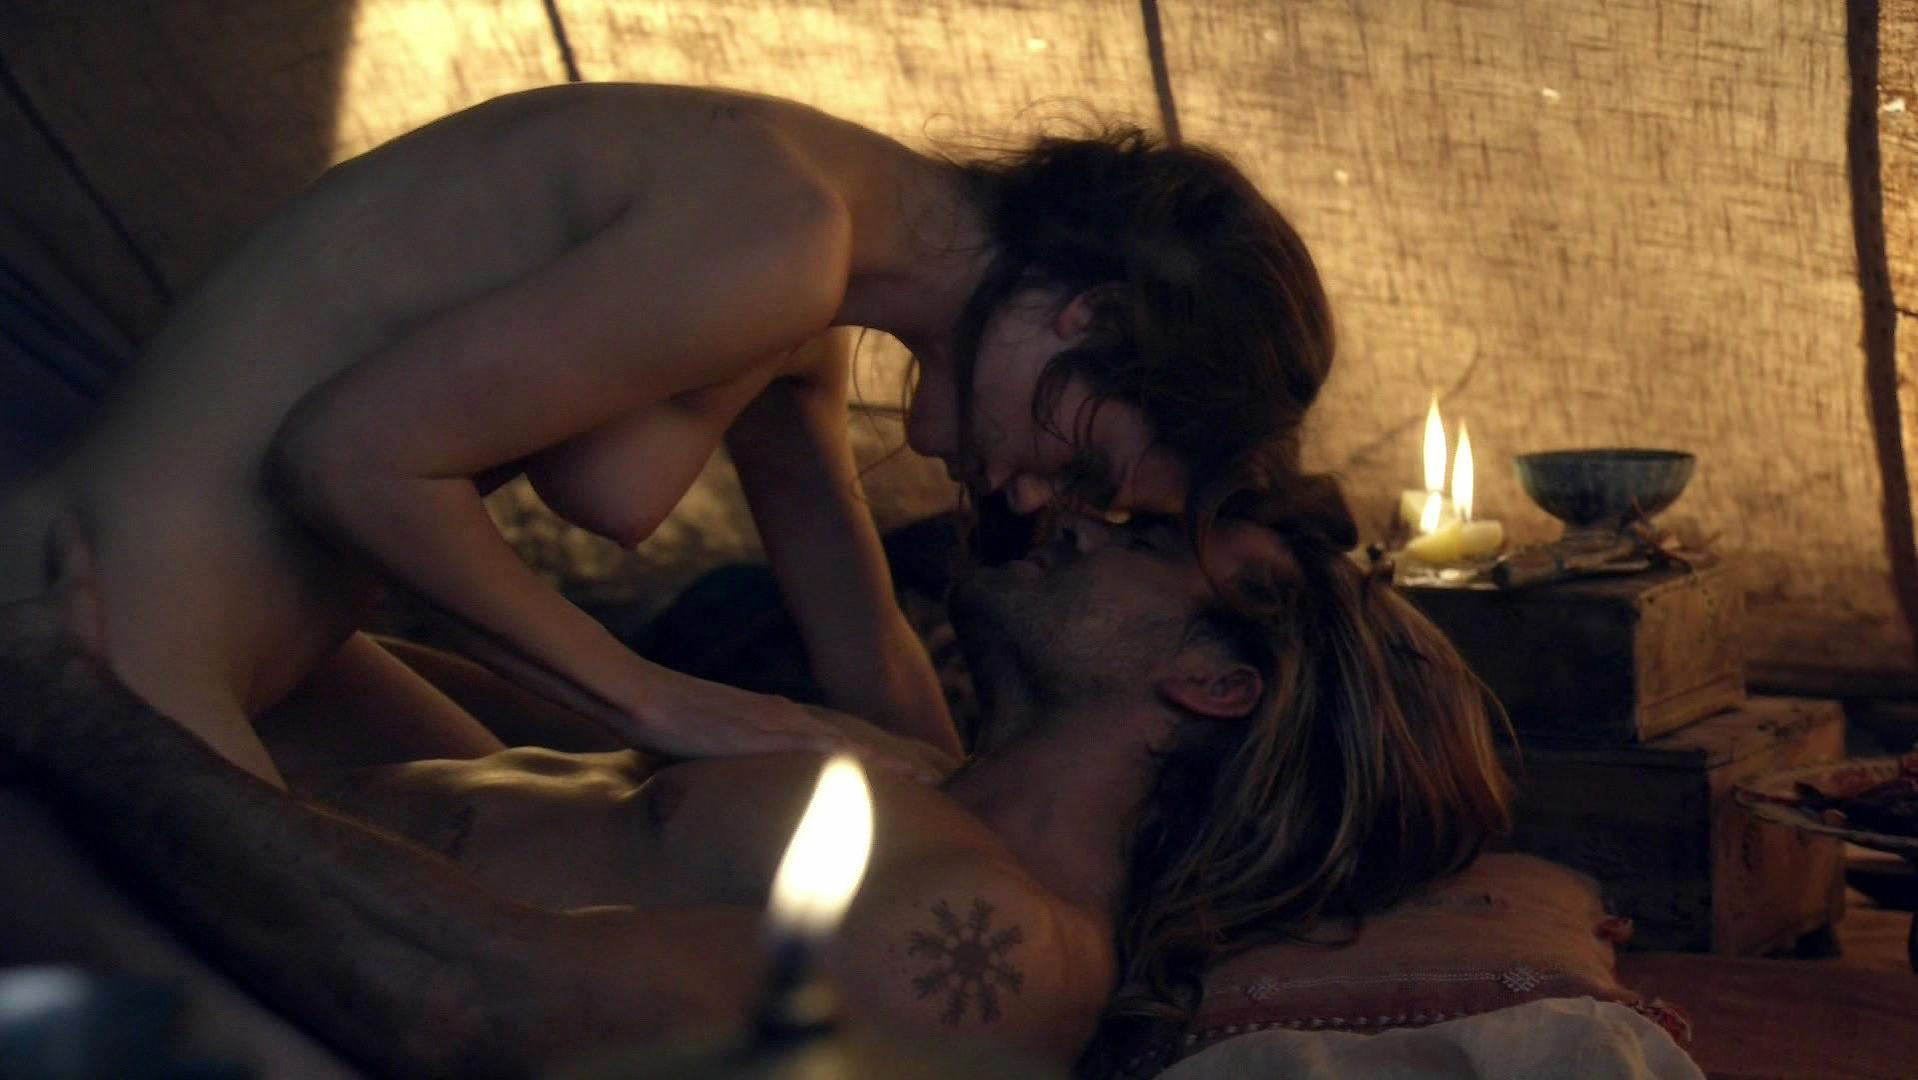 Lucy lawless viva bianca erin cummings nudes from spartacus - 1 part 4